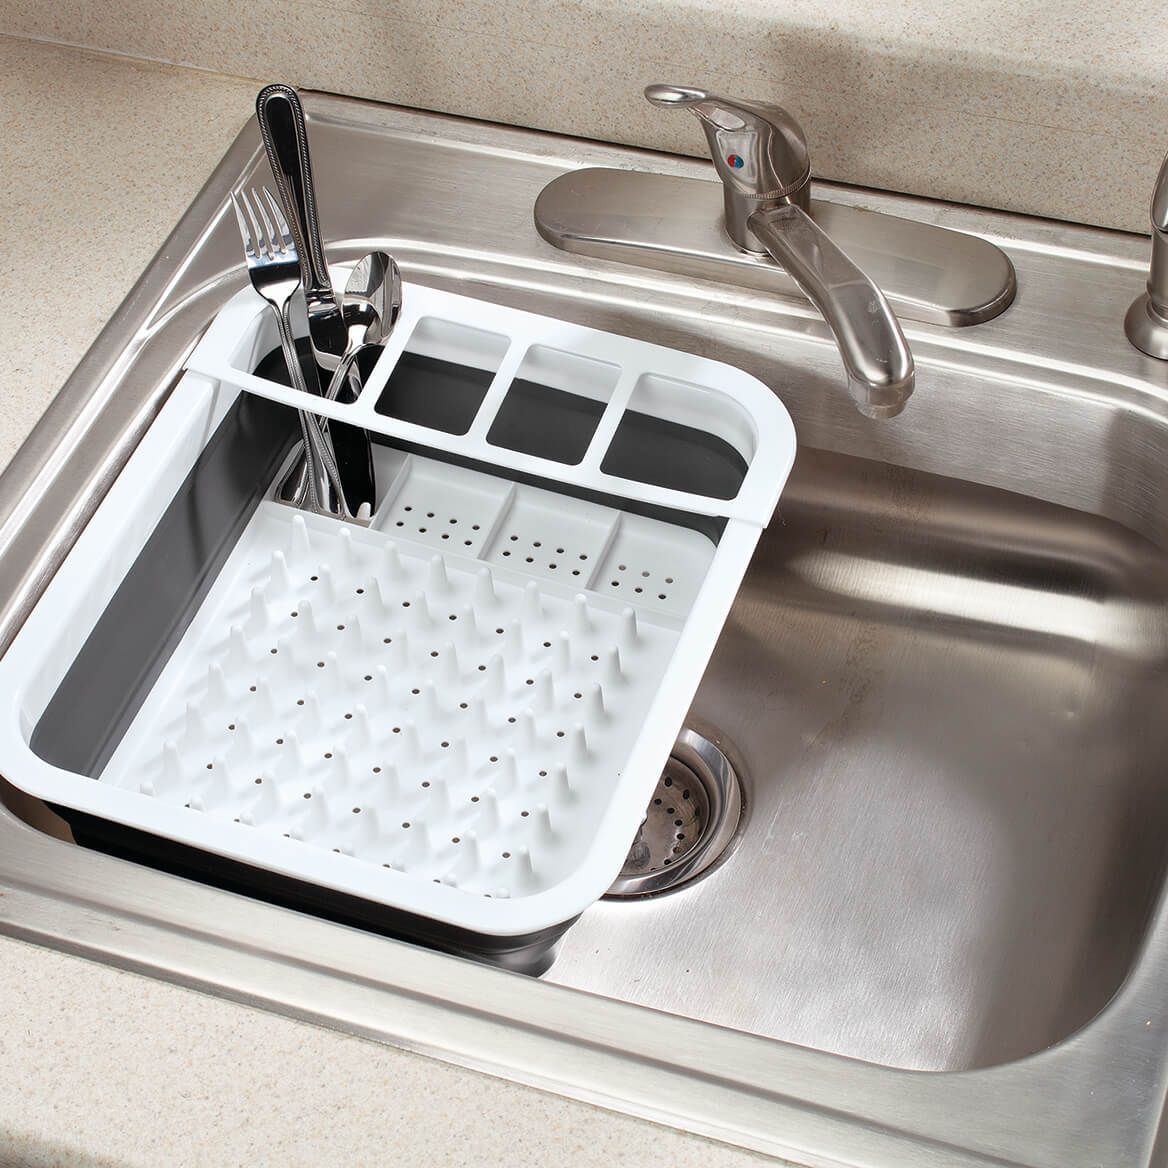 Collapsible Dish Rack-371396